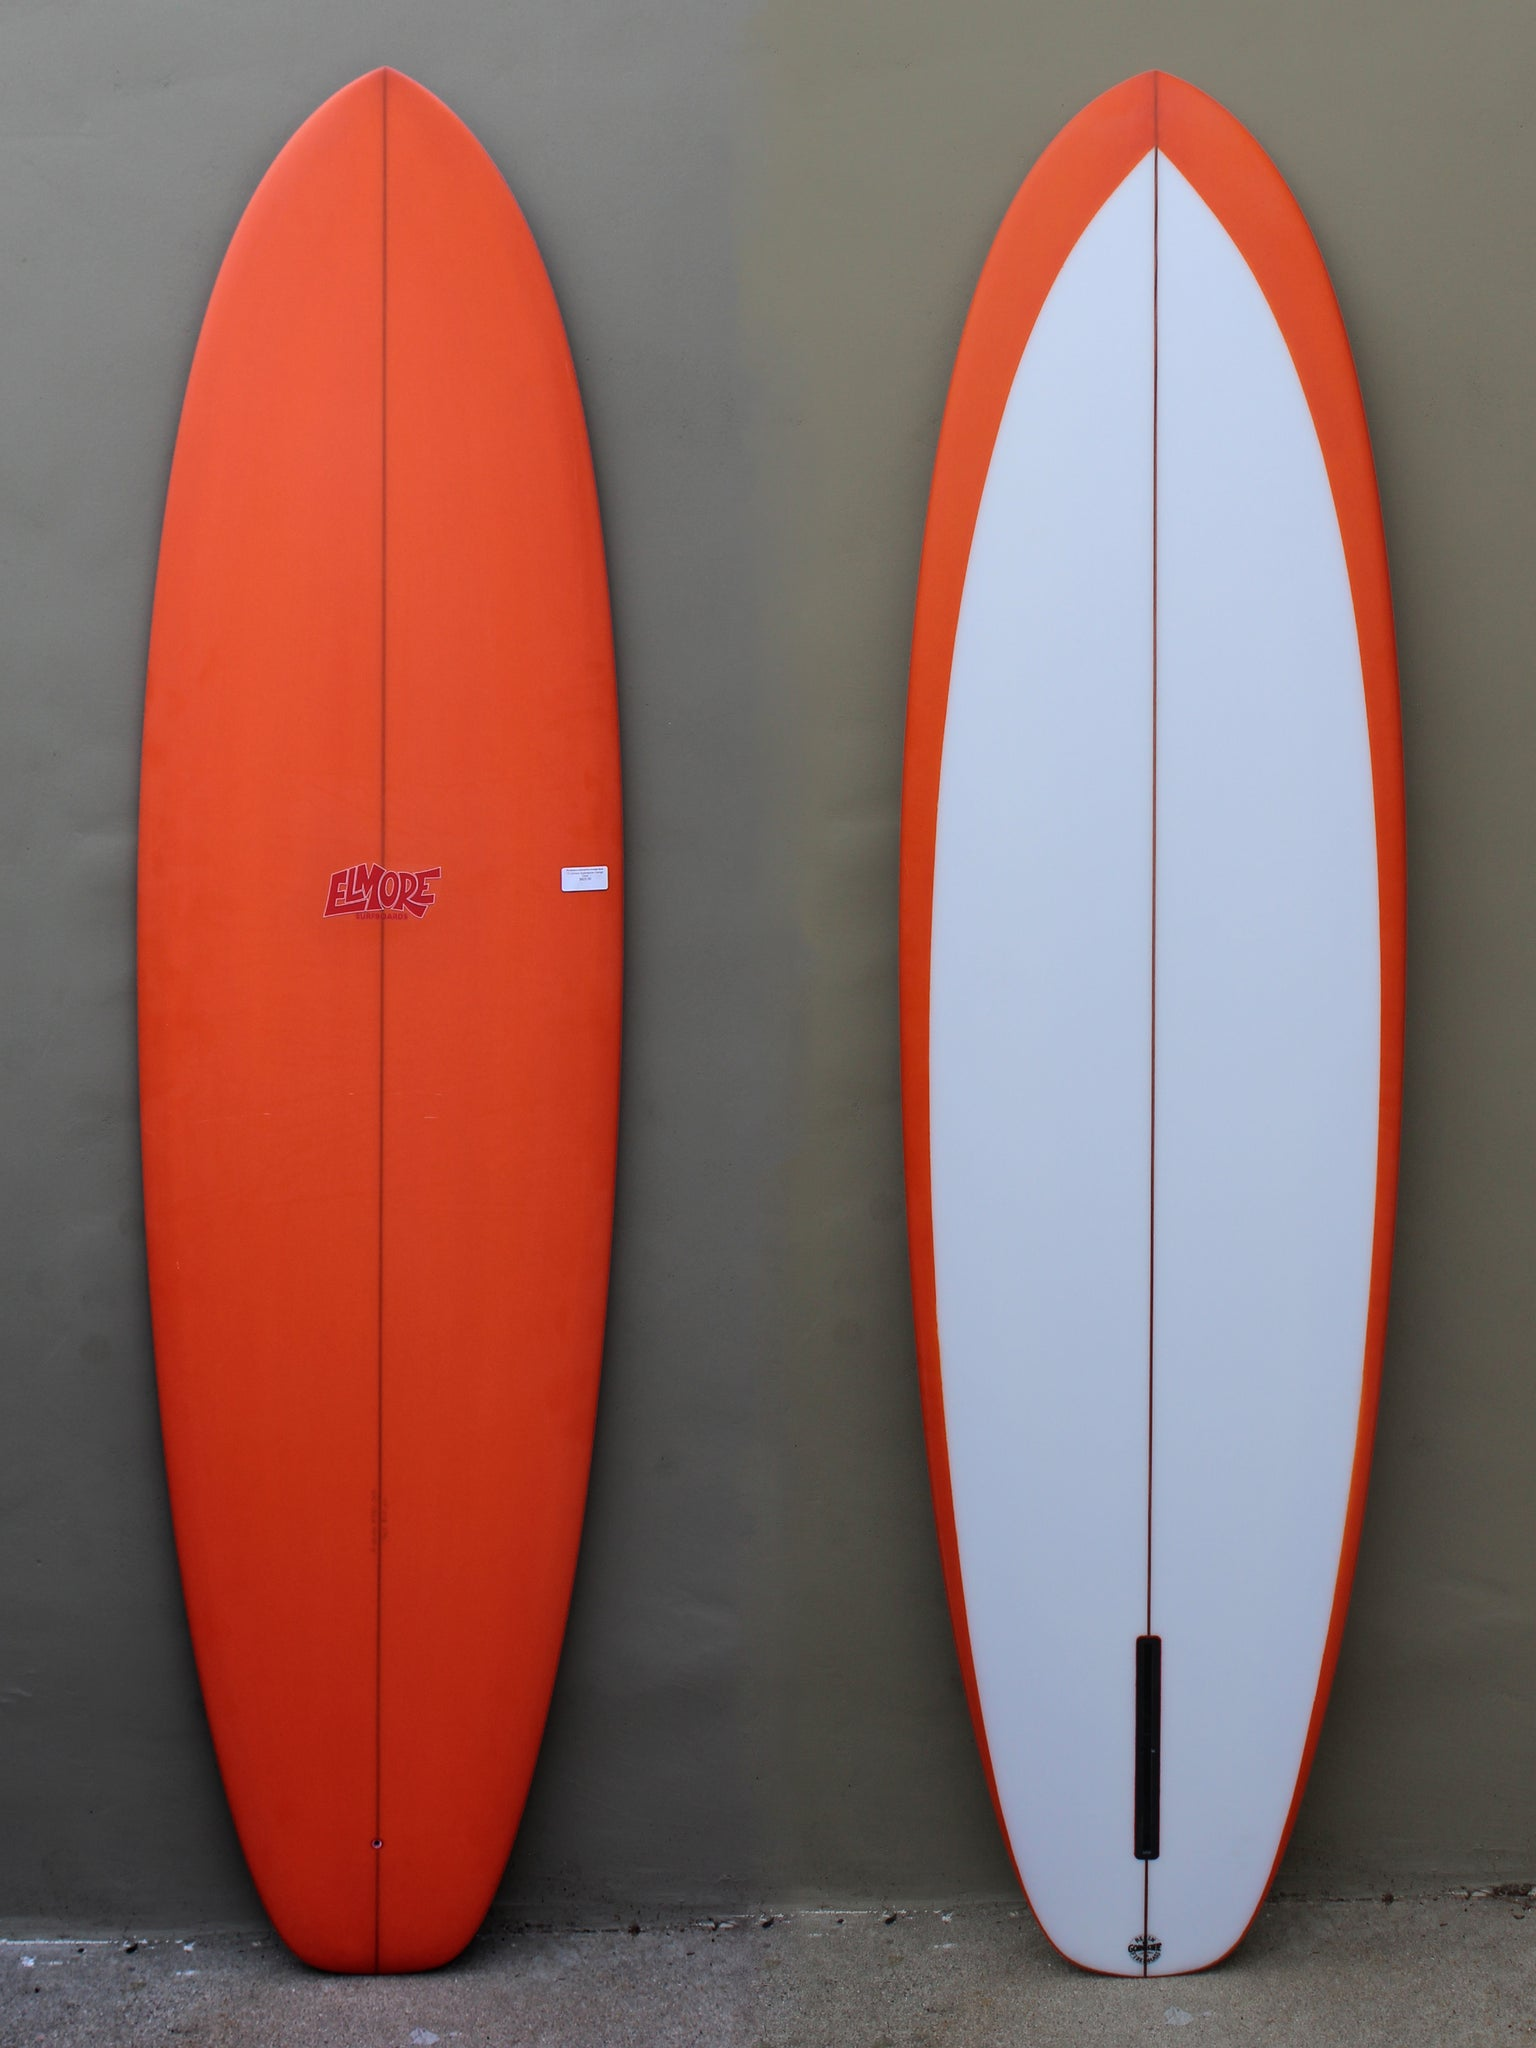 7'0 Troy Elmore Submarine